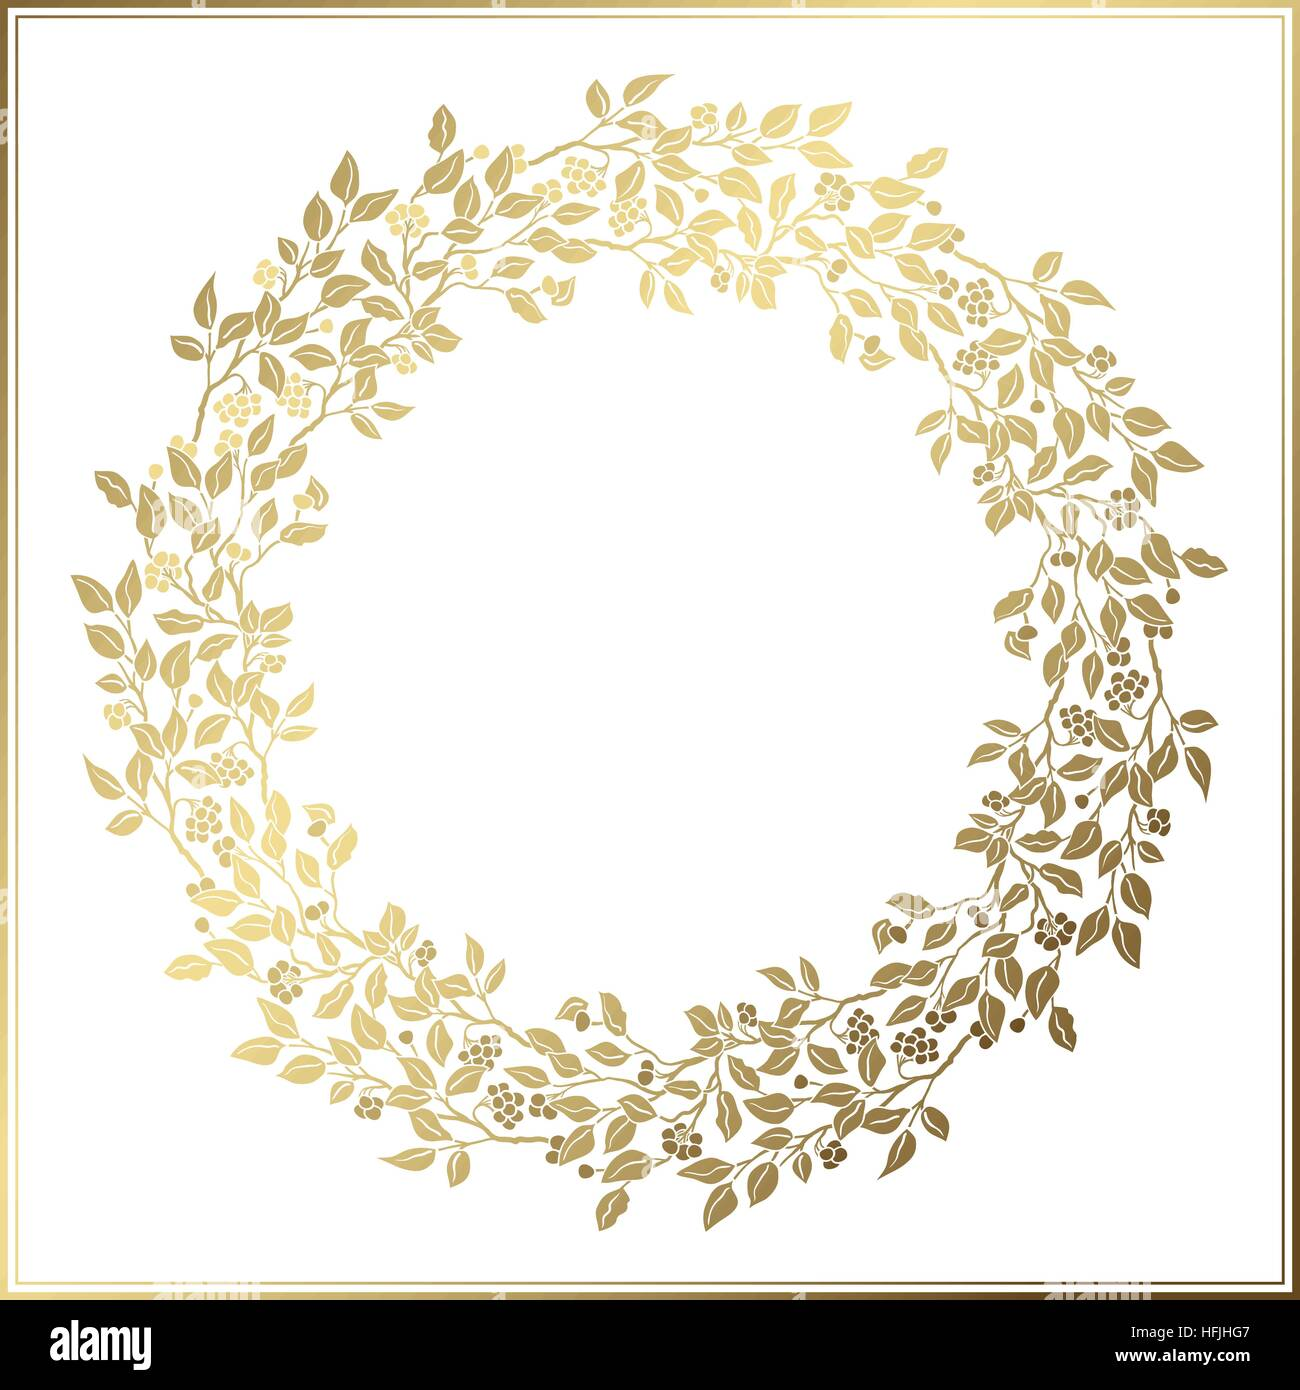 Beautiful Vintage Circle Frame Wedding Decor Openwork Template Golden Leaves And Berries On White Background